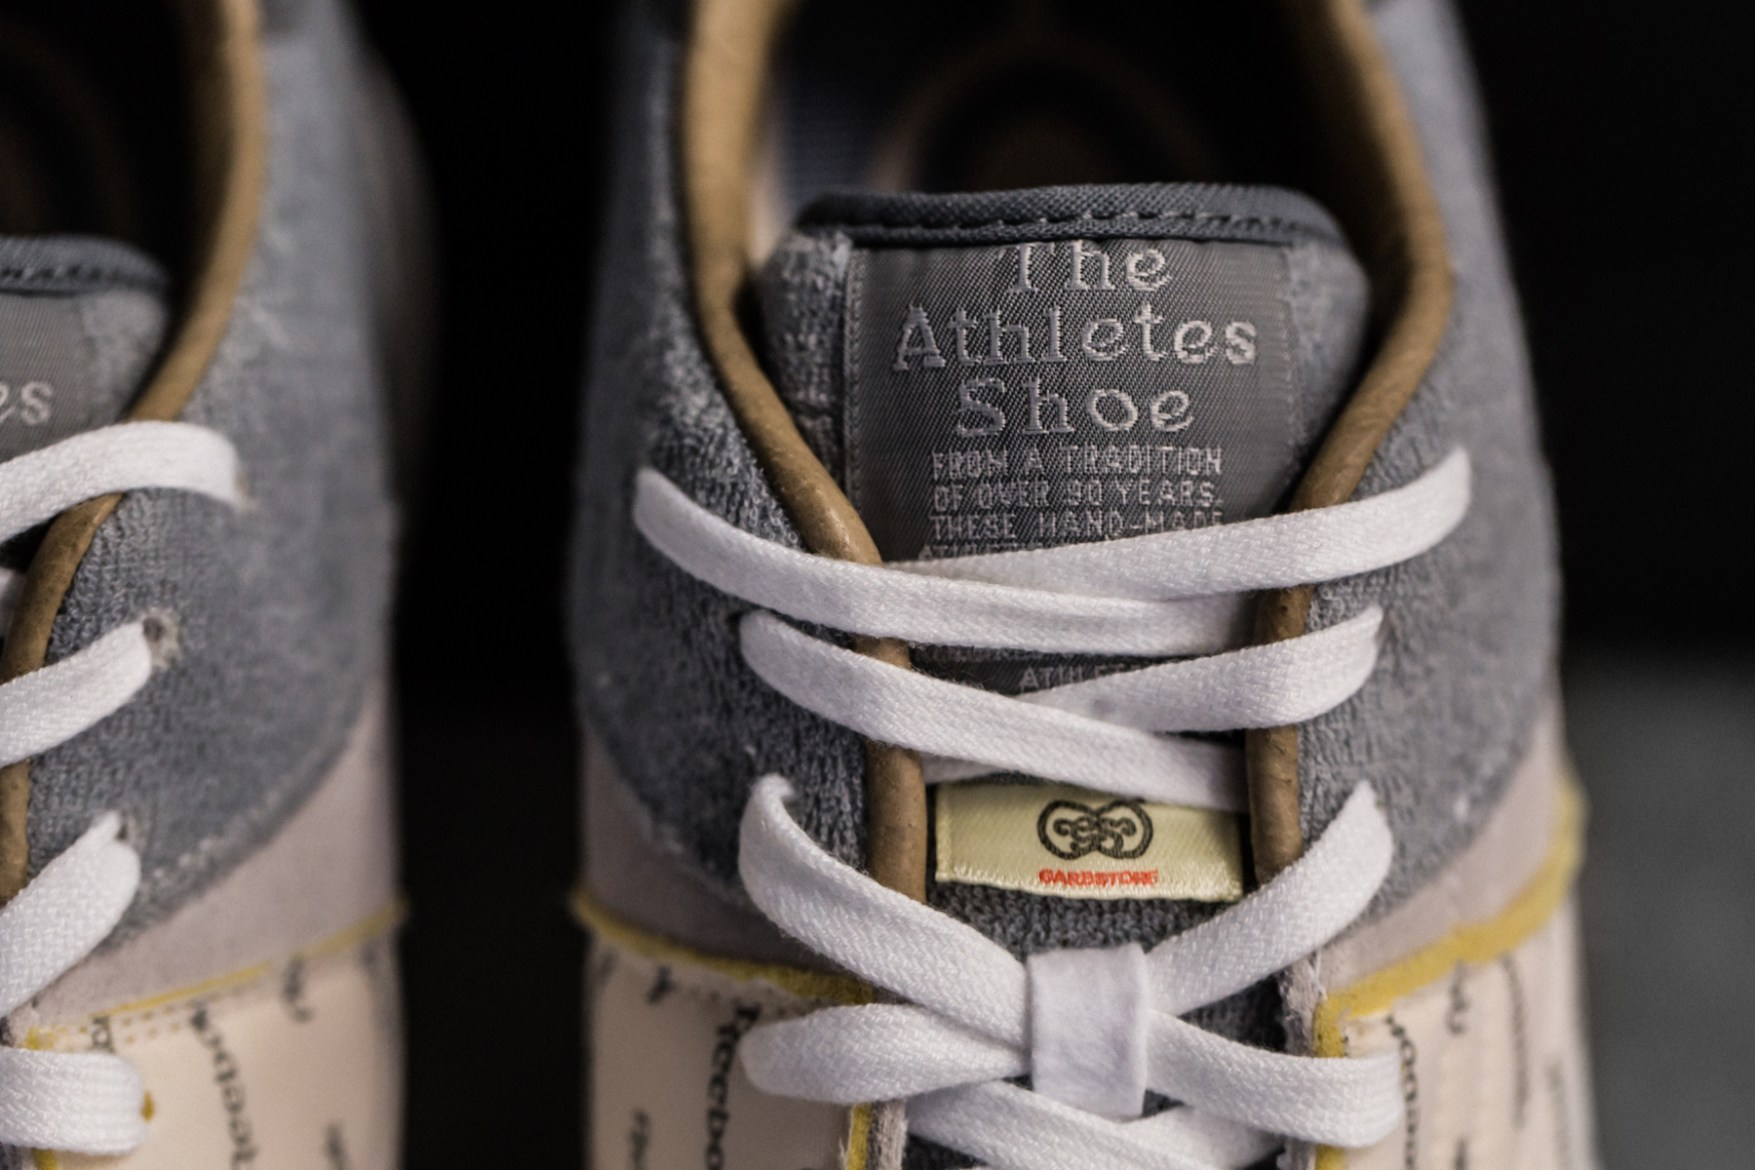 Garbstore x Reebok 2014 Fall/Winter CL Leather 6000